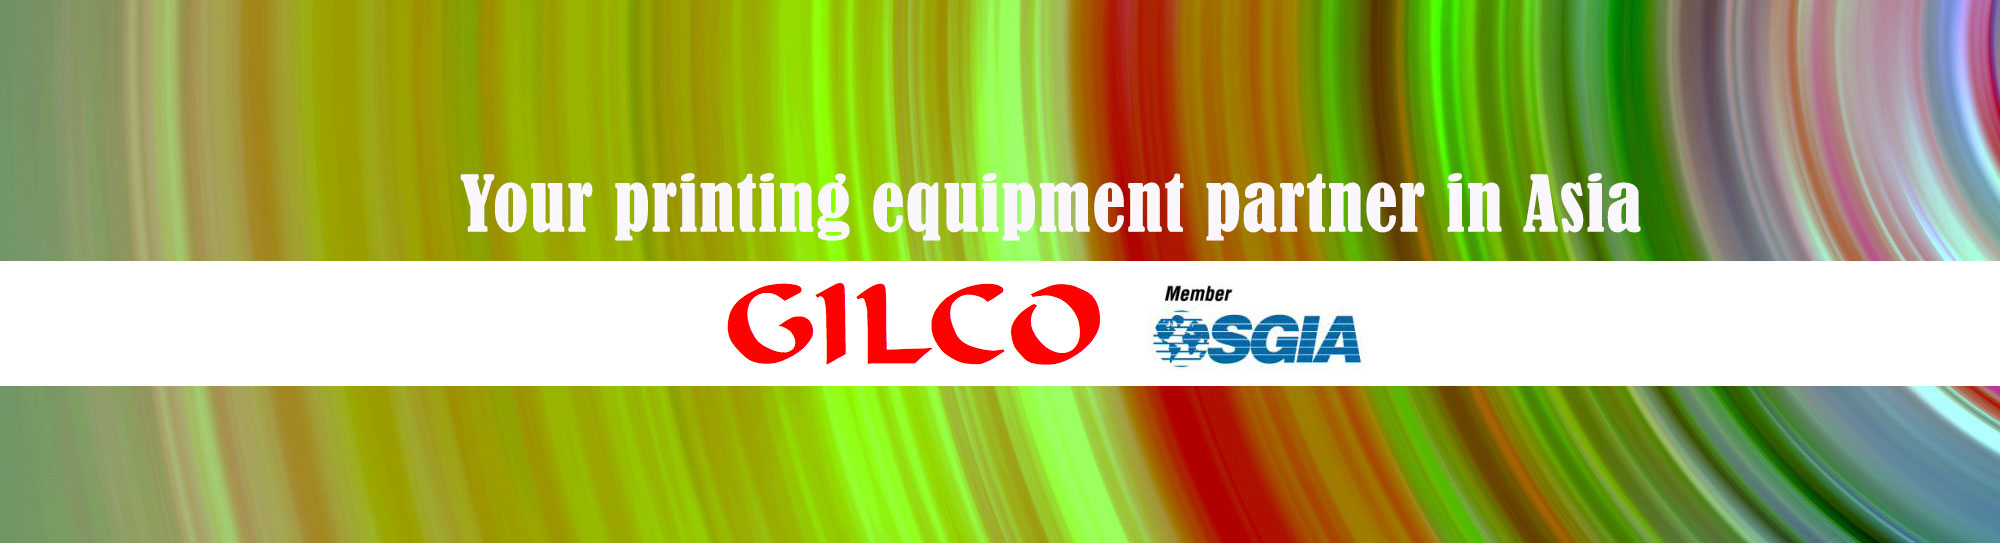 screen-printing-equipment-gilco